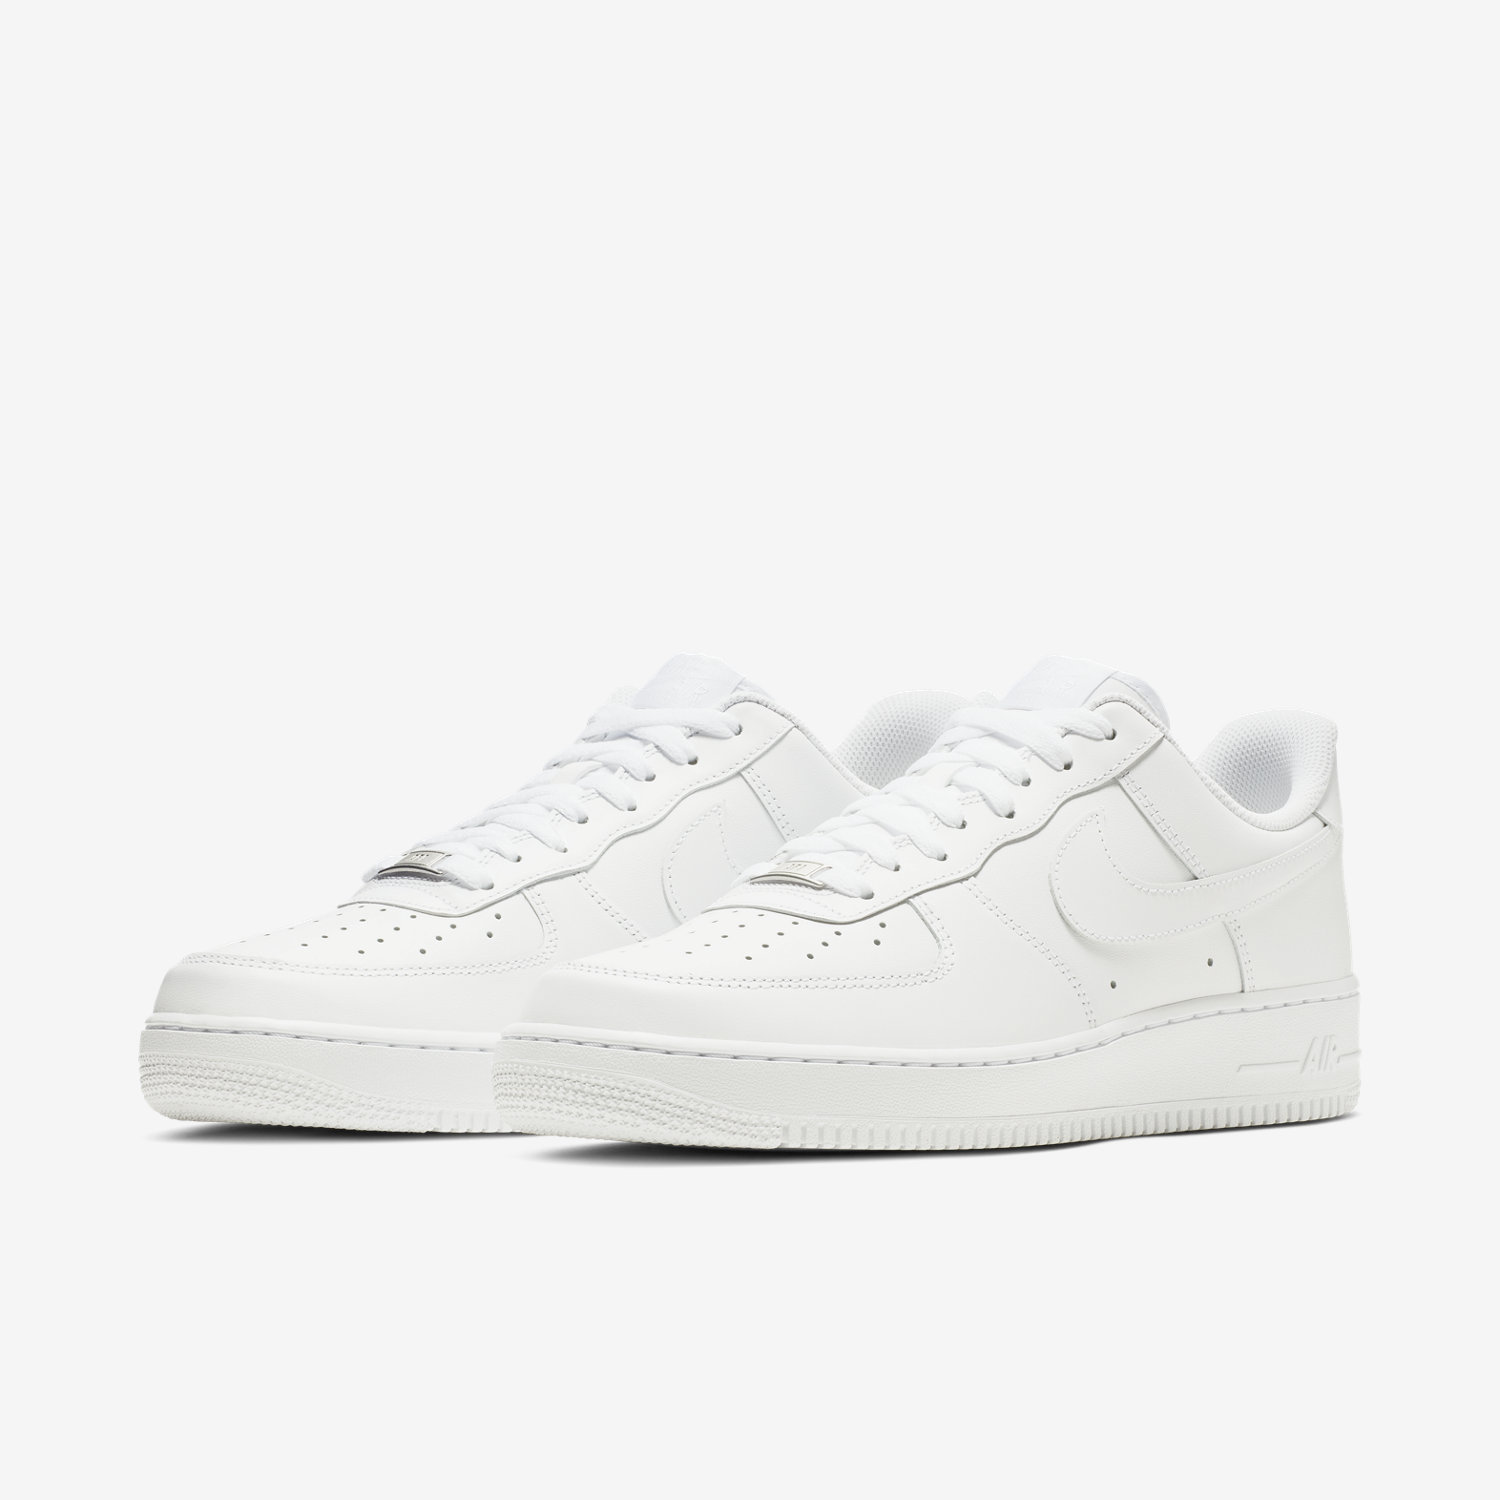 air force one shoes low top